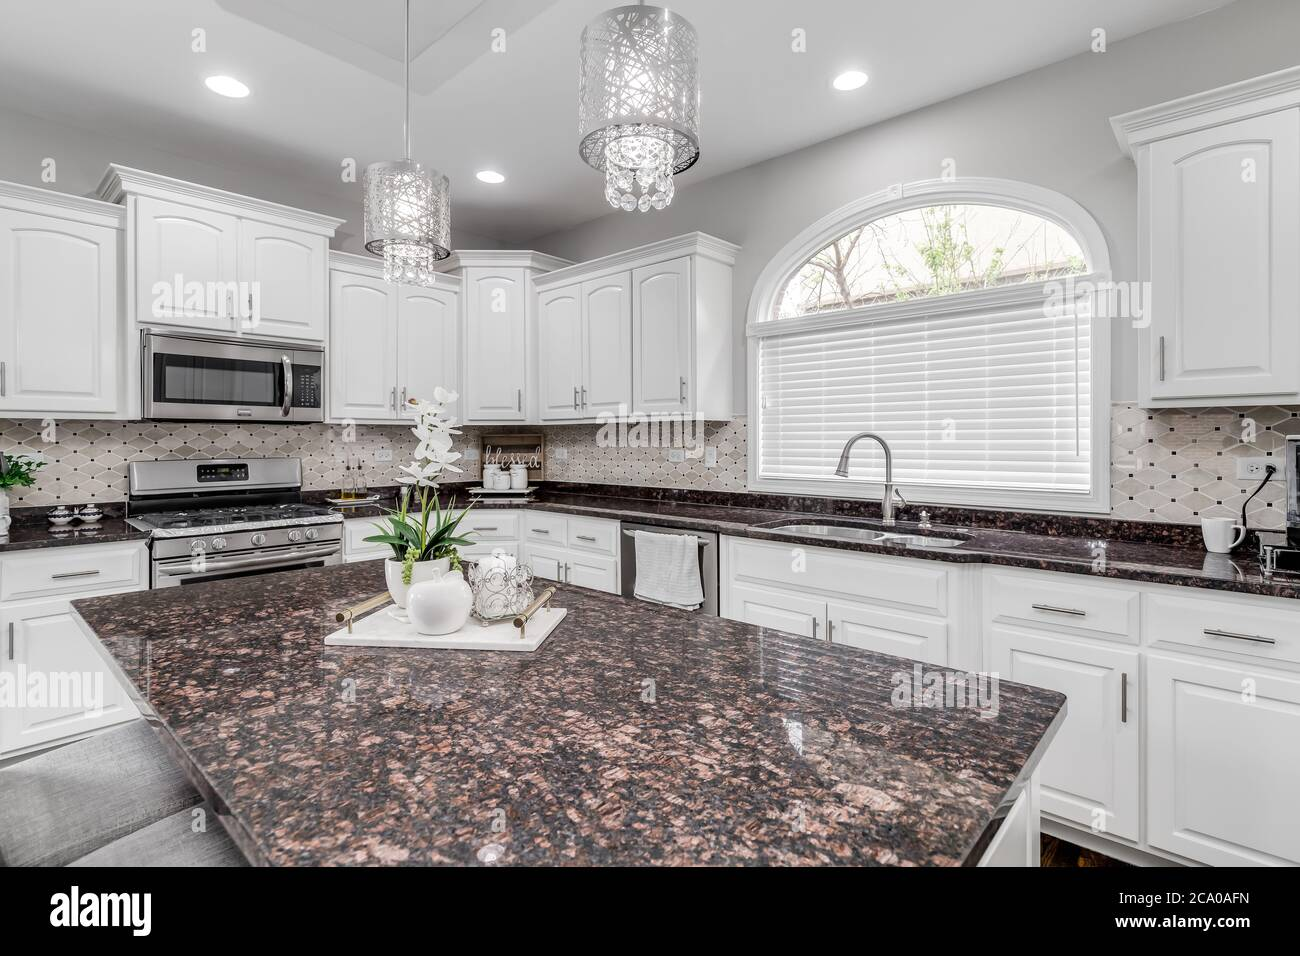 A Large Luxurious White Kitchen With A Brown And Black Granite Counter Top And Fancy Lights Hanging Over The Island Stock Photo Alamy